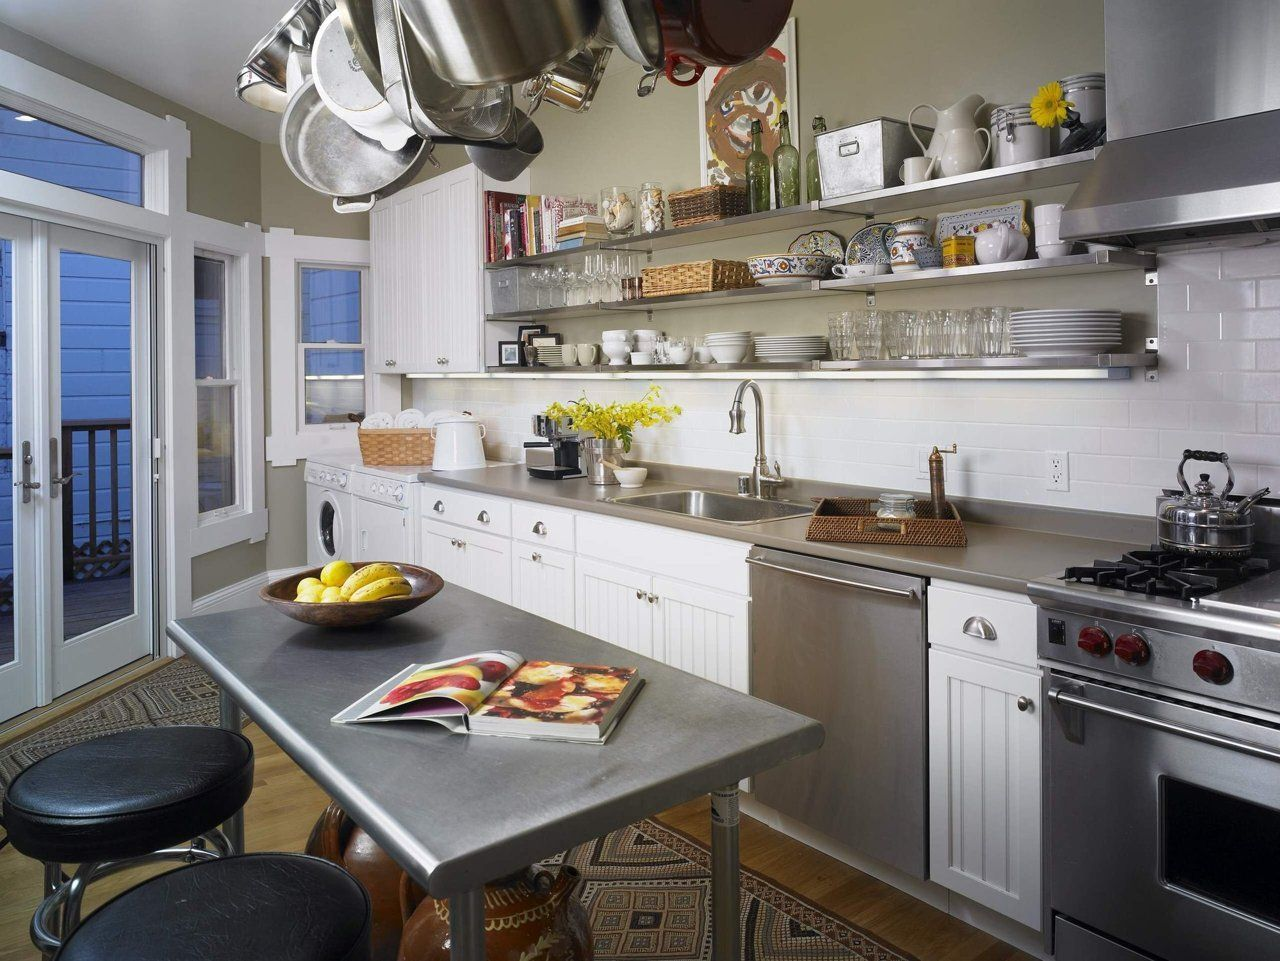 10 Lovely Efficient One Wall Kitchens Eclectic Kitchen Kitchen Remodel Small One Wall Kitchen